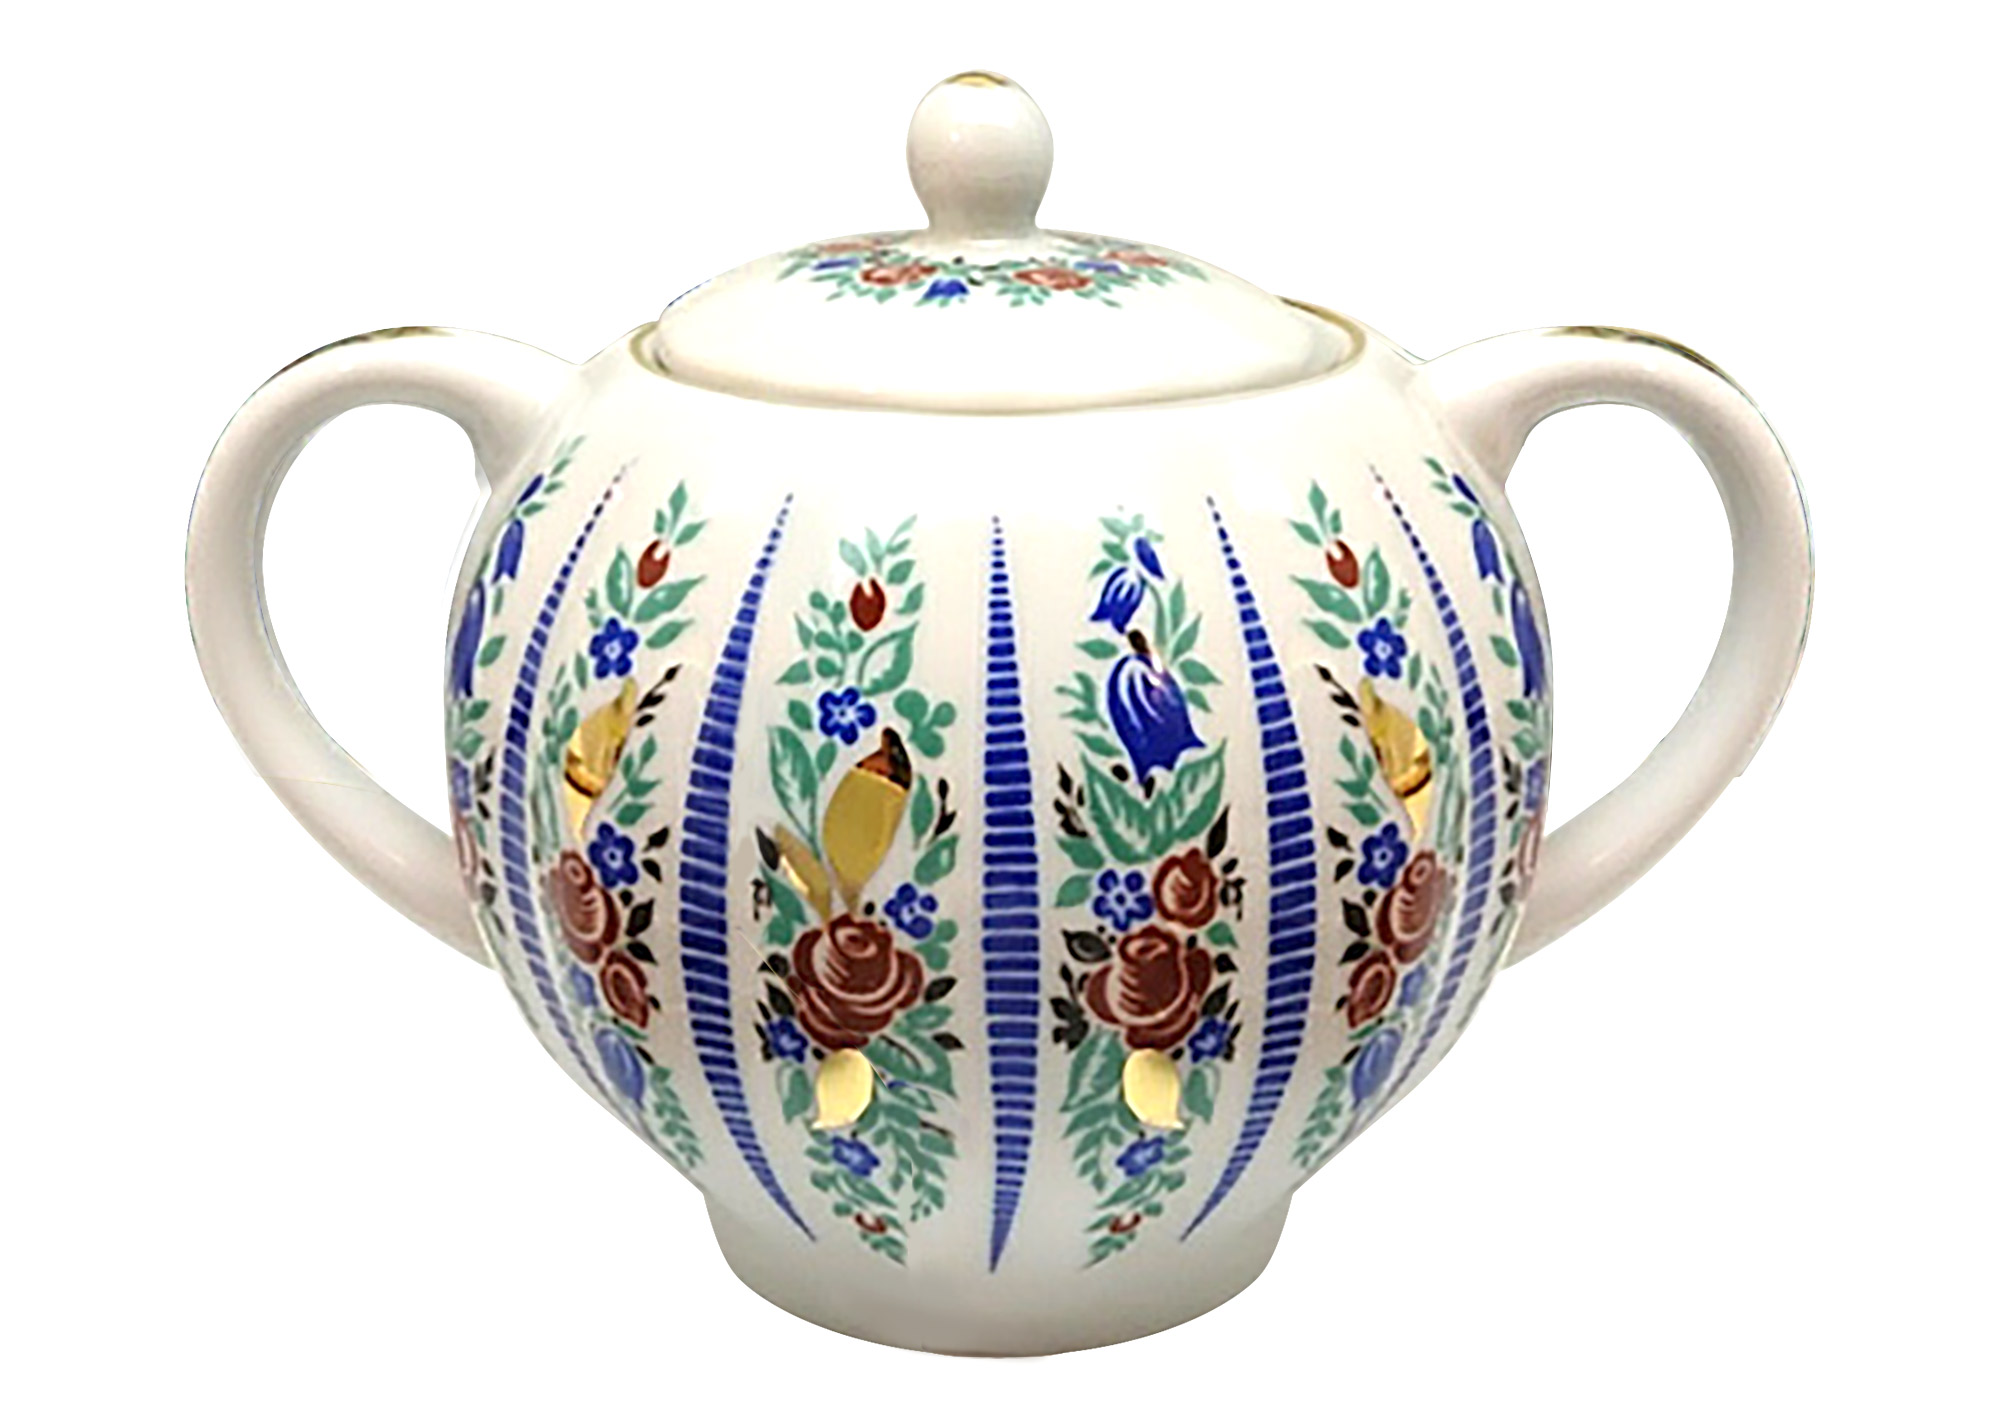 Buy Sarafan Sugar Bowl at GoldenCockerel.com